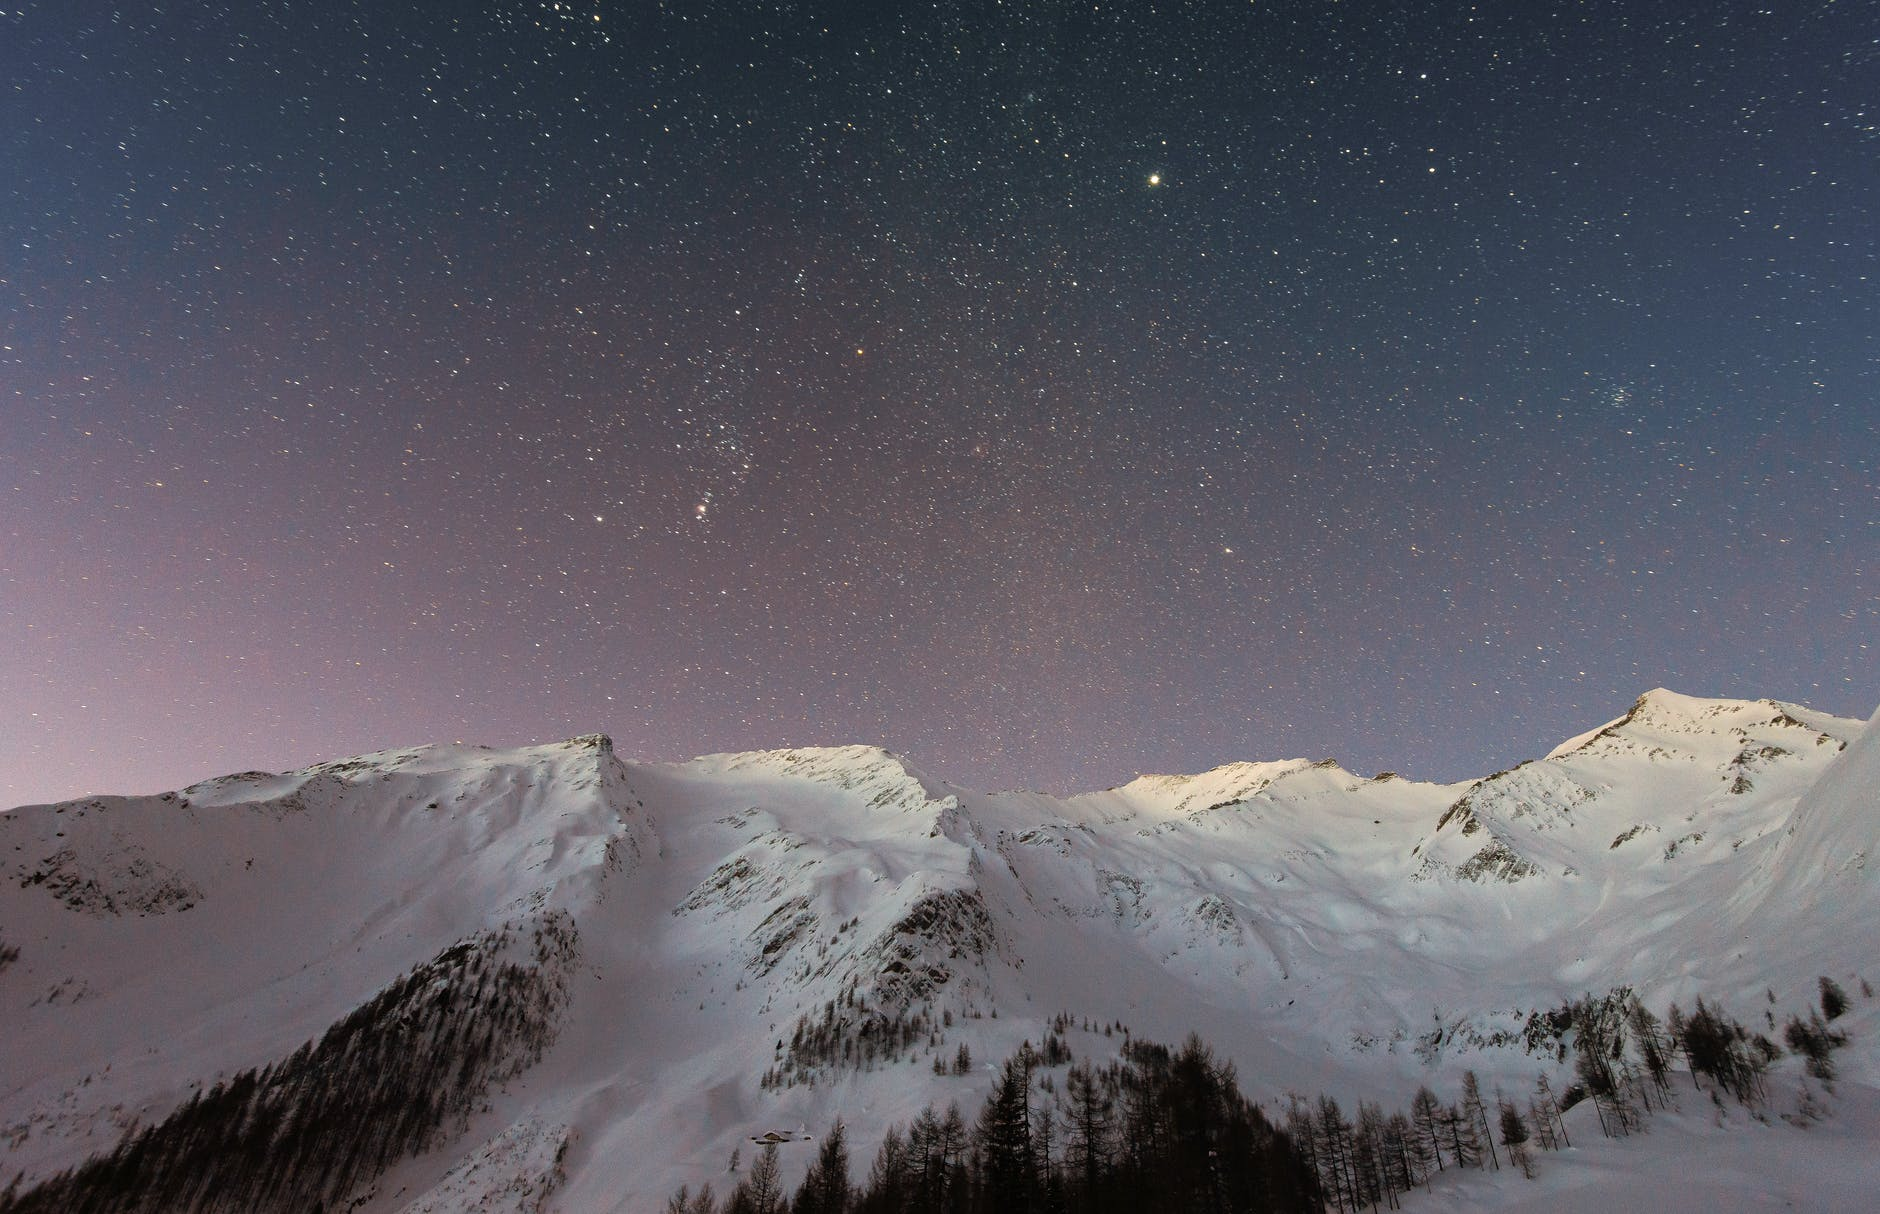 A sky full of stars above some snowy mountains. Photo by eberhard grossgasteiger on pexels.com